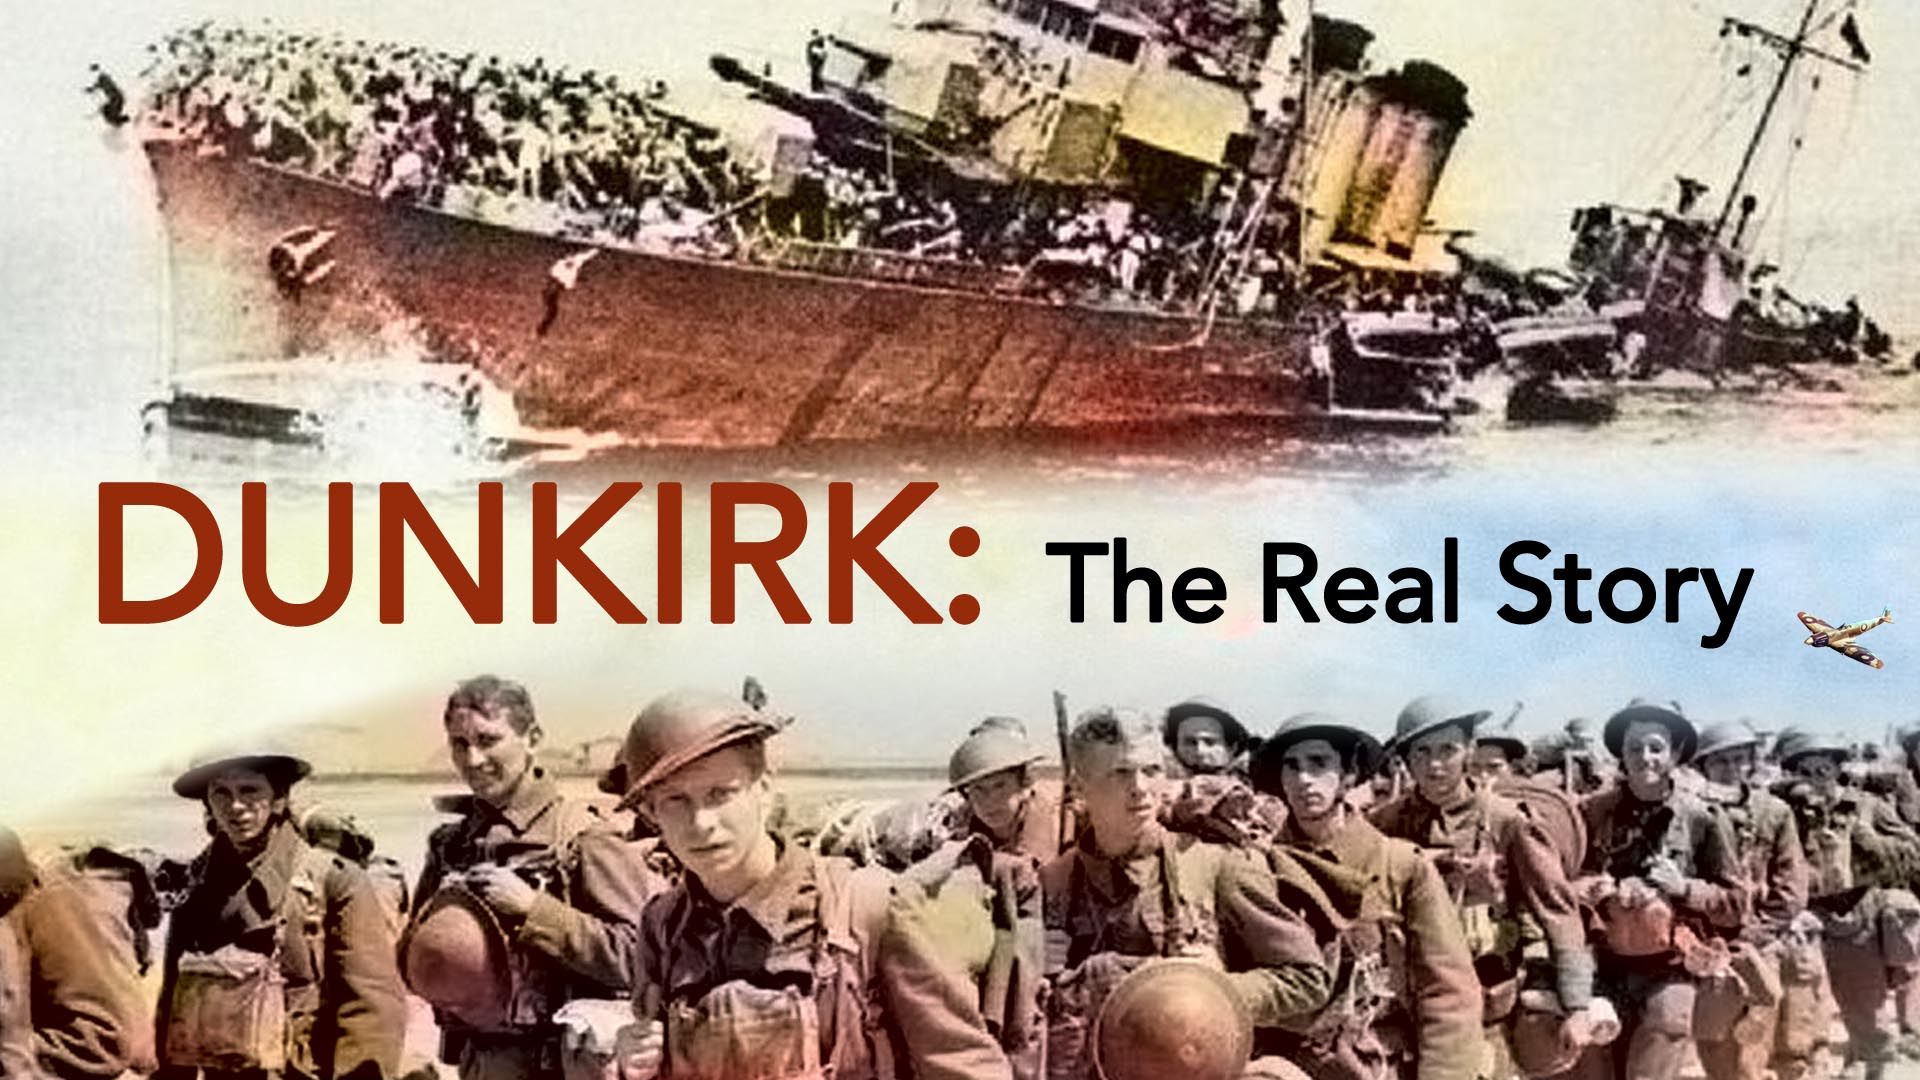 Dunkirk: The Real Story